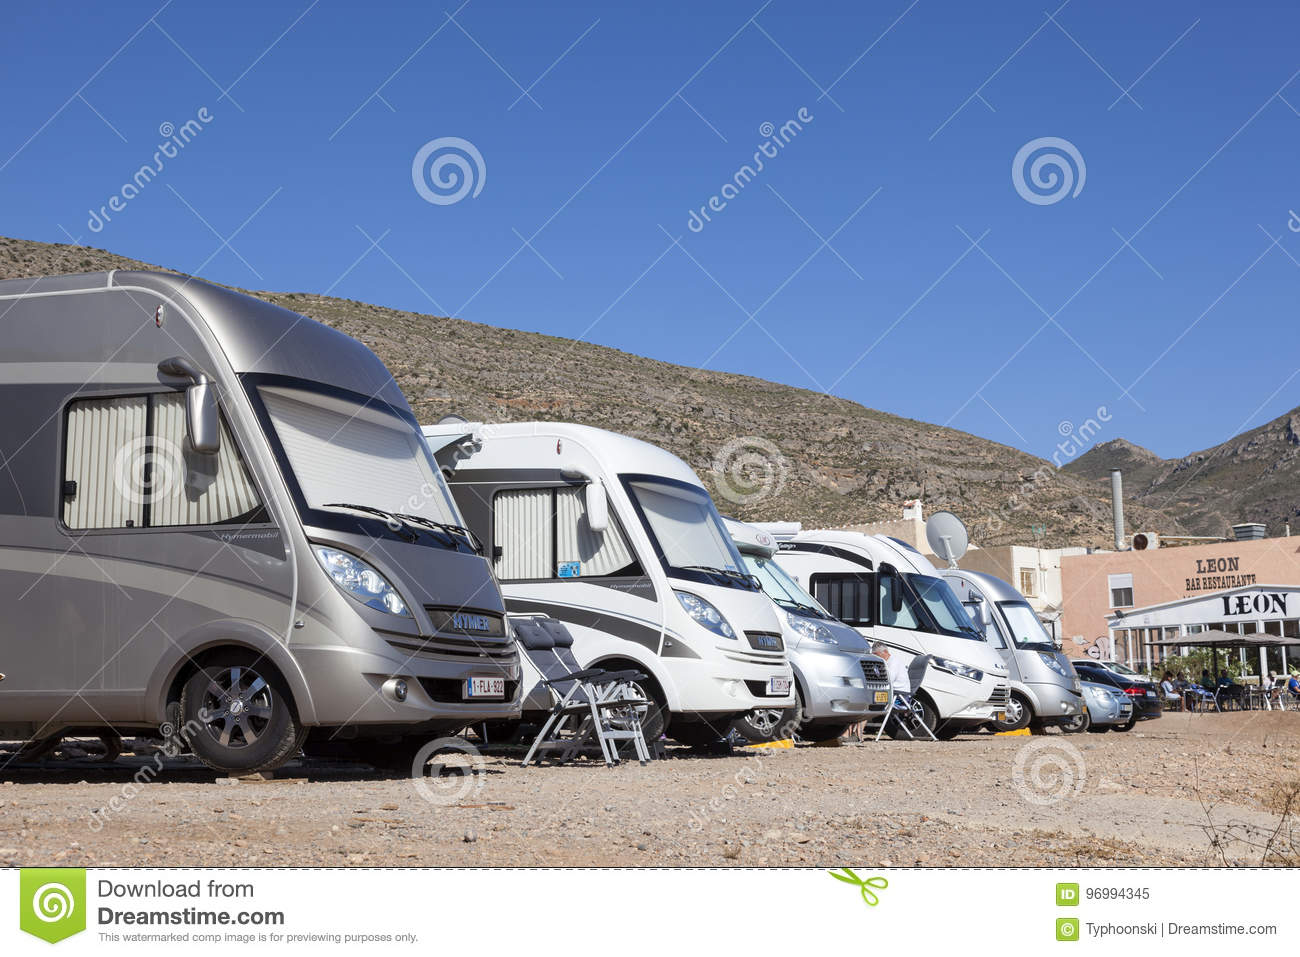 Mobile Home Parking Lot on truck parking lot, boat parking lot, motorcycle parking lot, hotel parking lot, office parking lot, mixed use parking lot, warehouse parking lot, new construction parking lot, restaurant parking lot, mobile home parking space, town house parking lot,